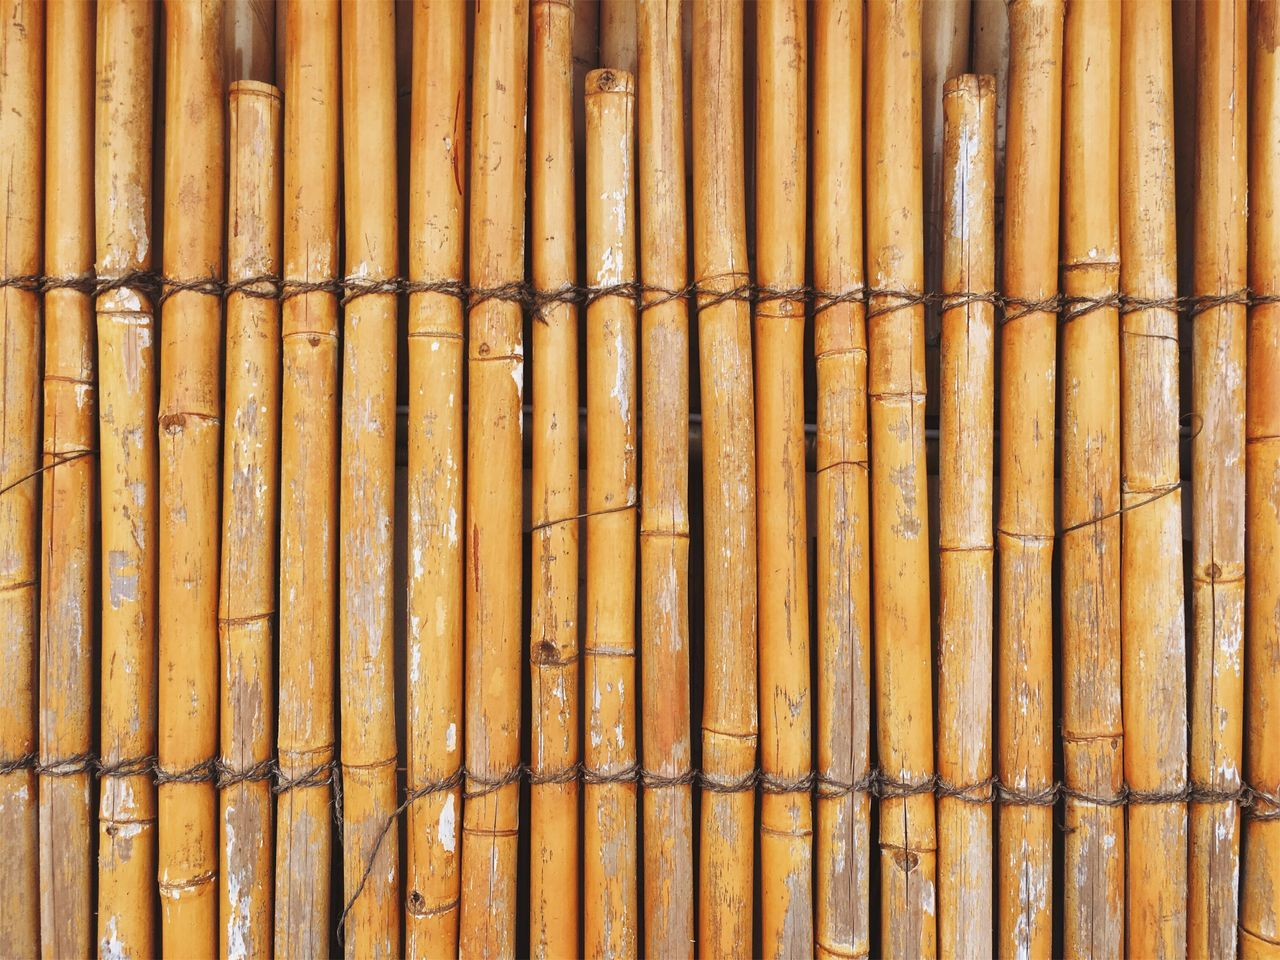 Bamboo fence. Full Frame Backgrounds Pattern Close-up No People Textured  Yellow Day Outdoors Bamboo